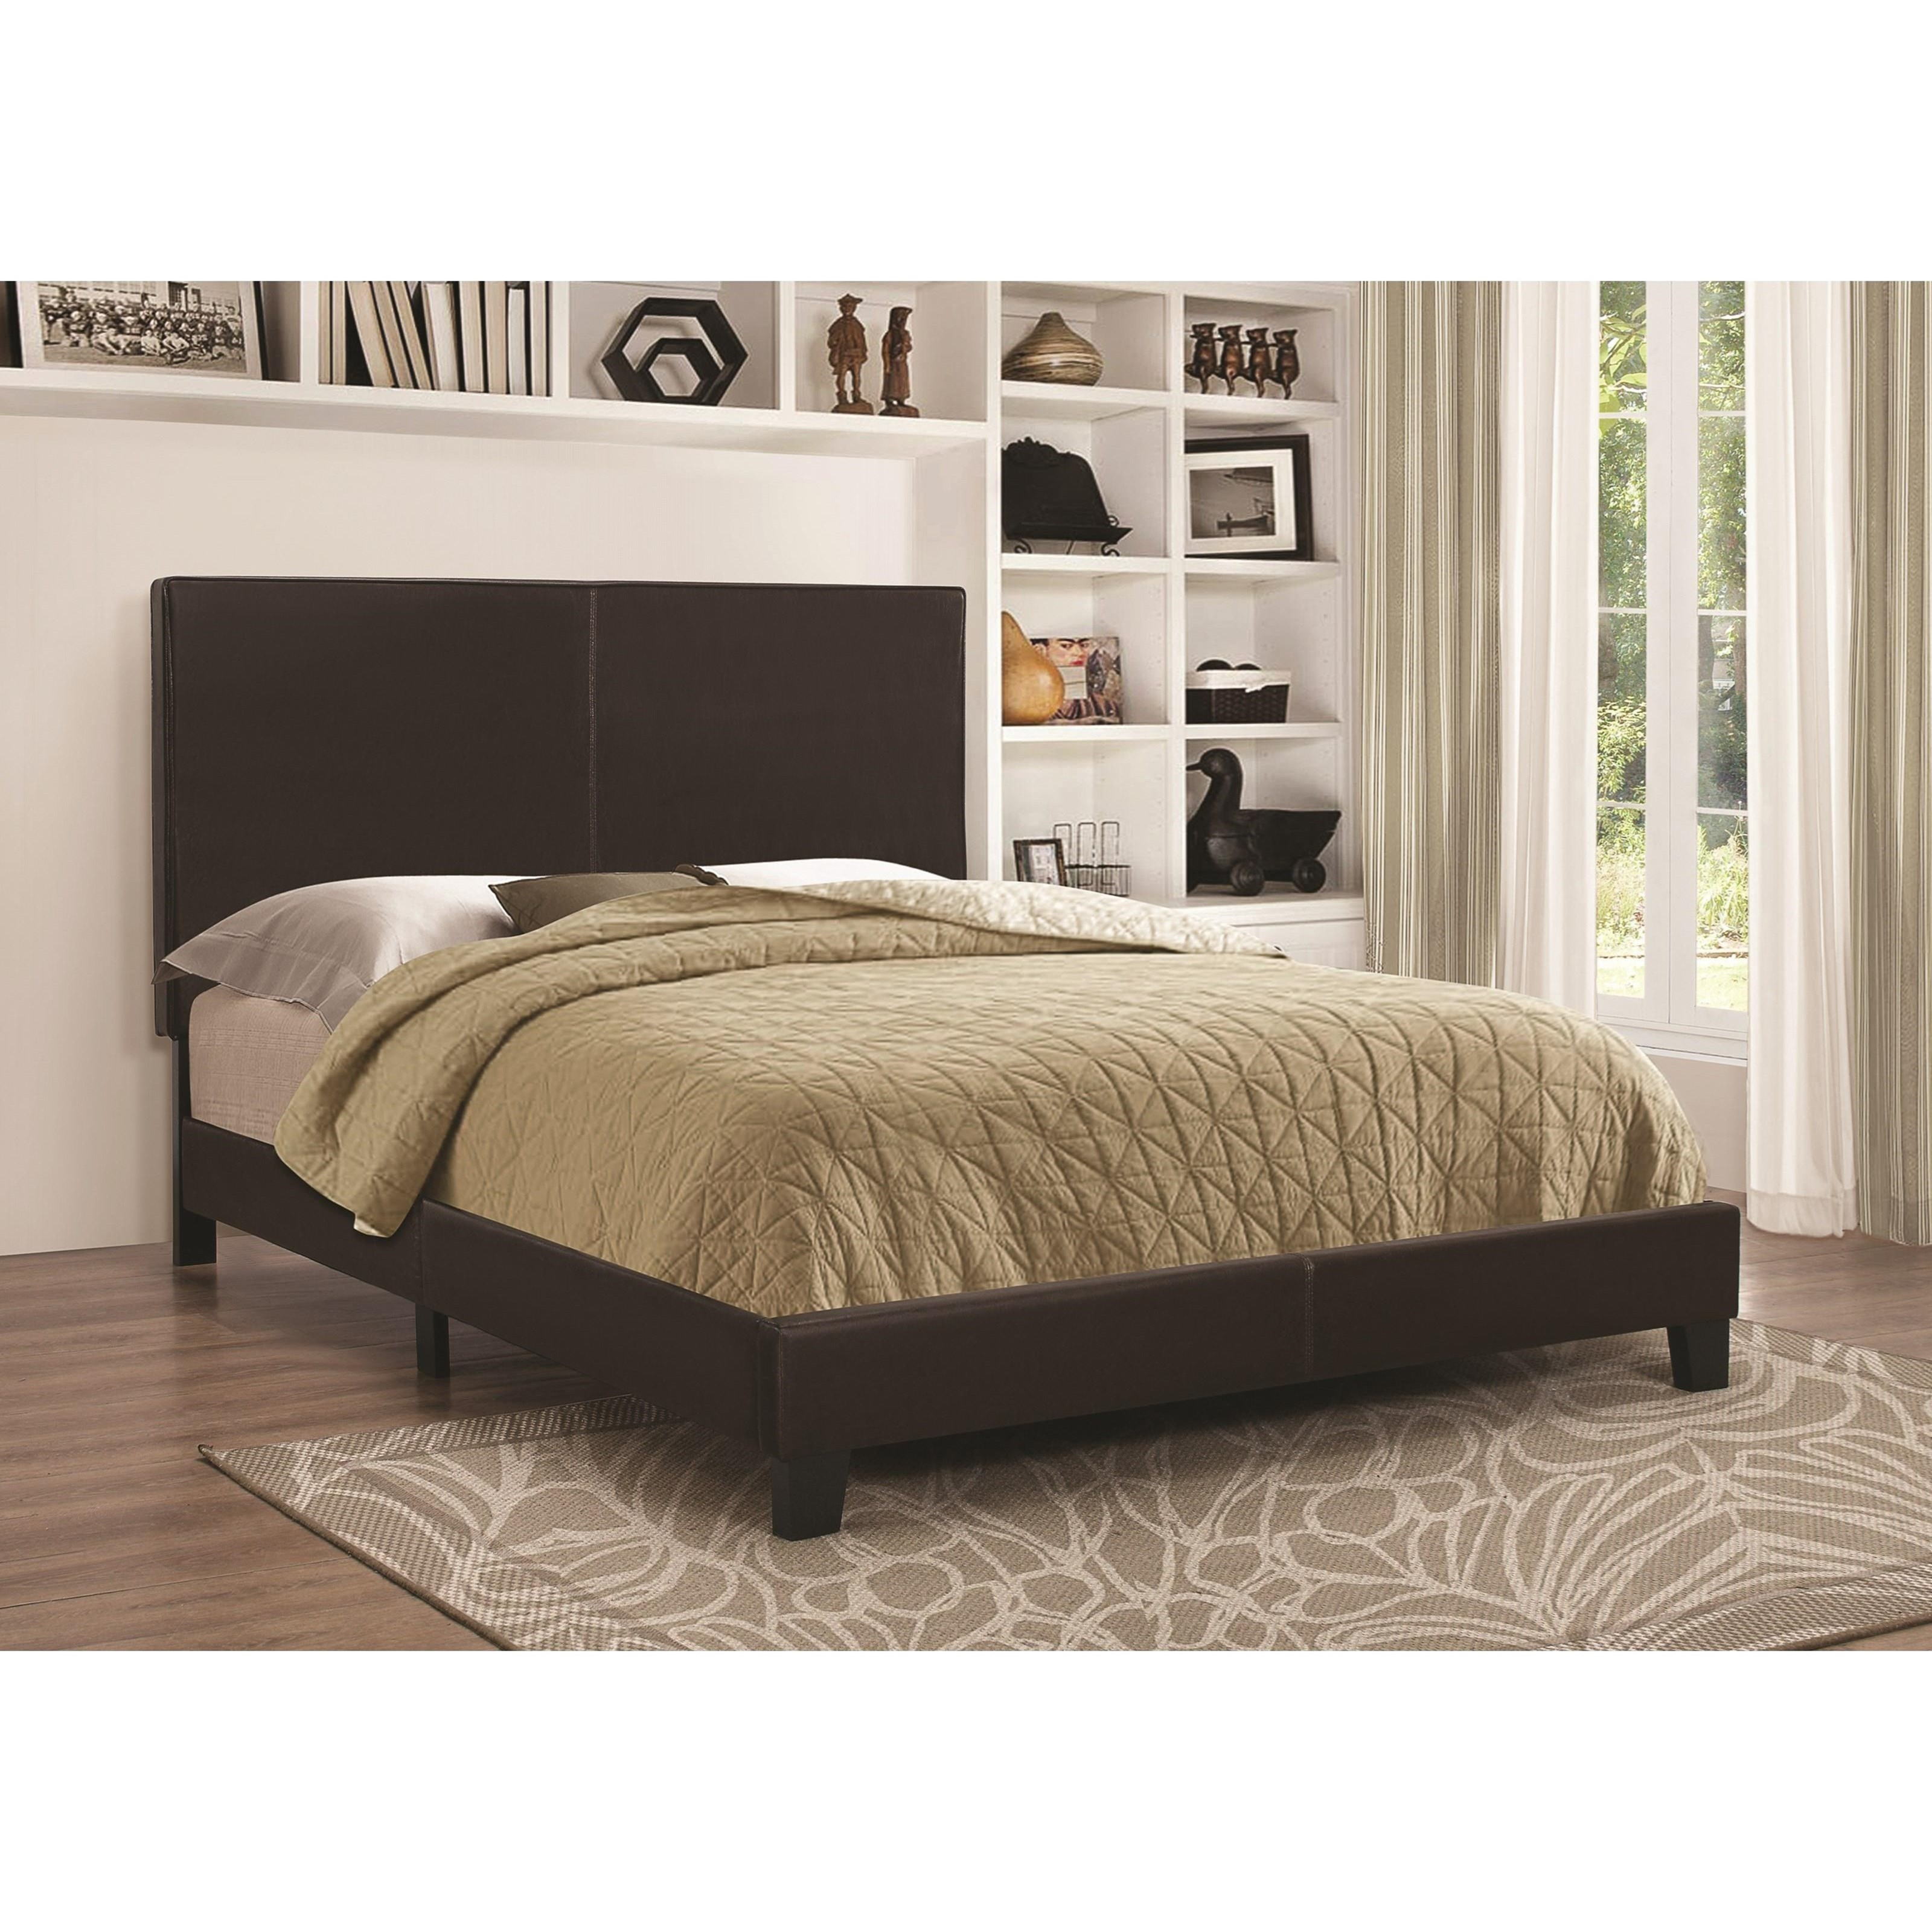 Upholstered Beds Queen Bed by Coaster at Lapeer Furniture & Mattress Center